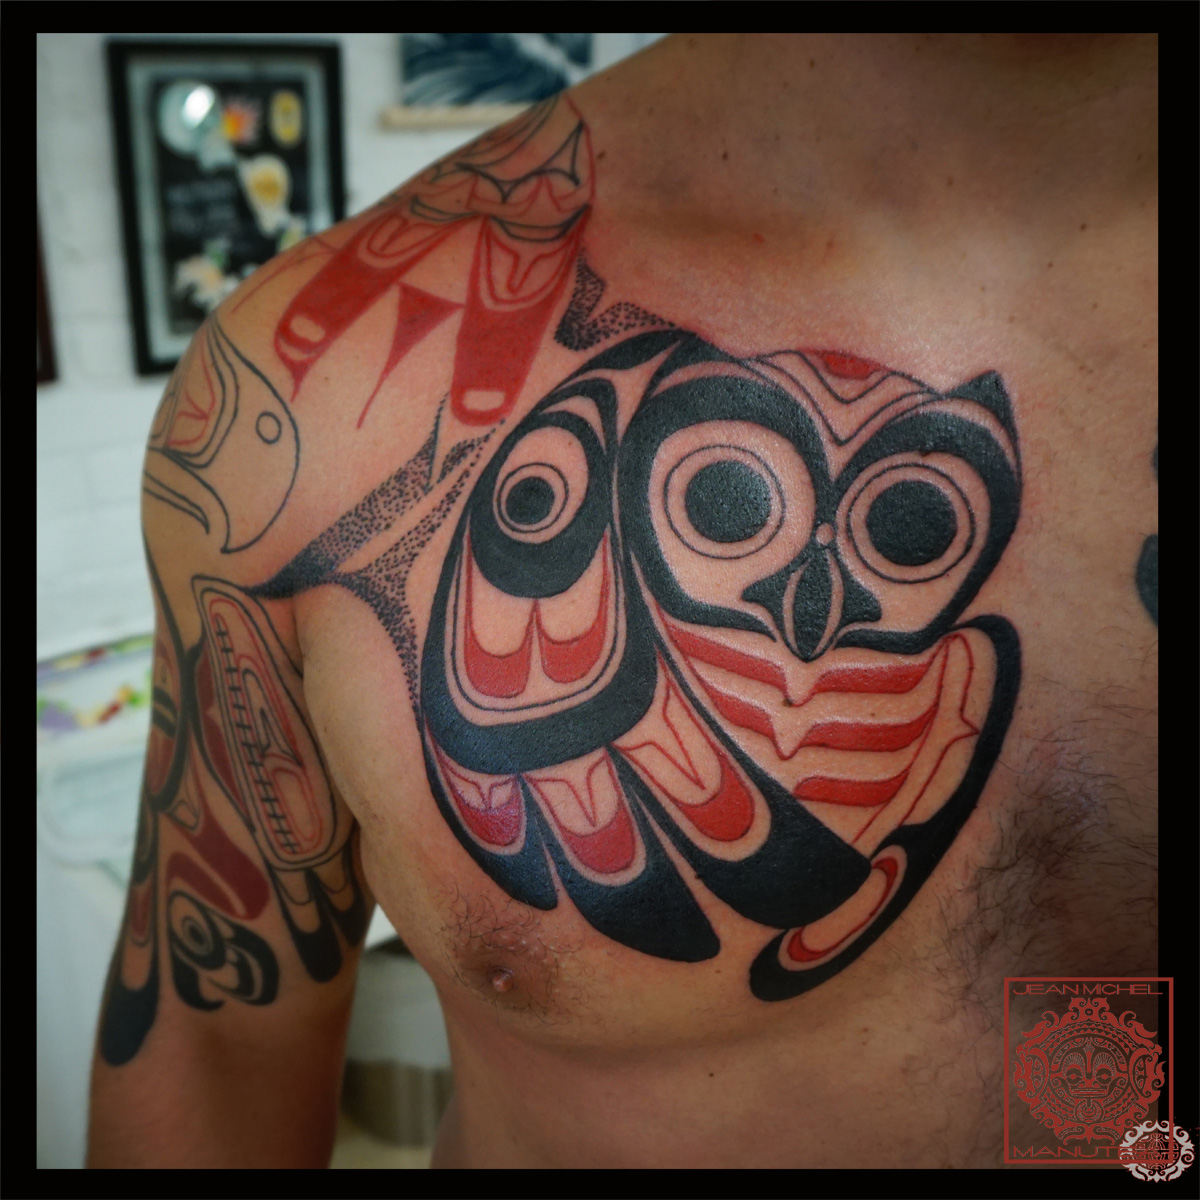 tatouage polynesien polynesian tattoo northwest coast art haida owl. Black Bedroom Furniture Sets. Home Design Ideas